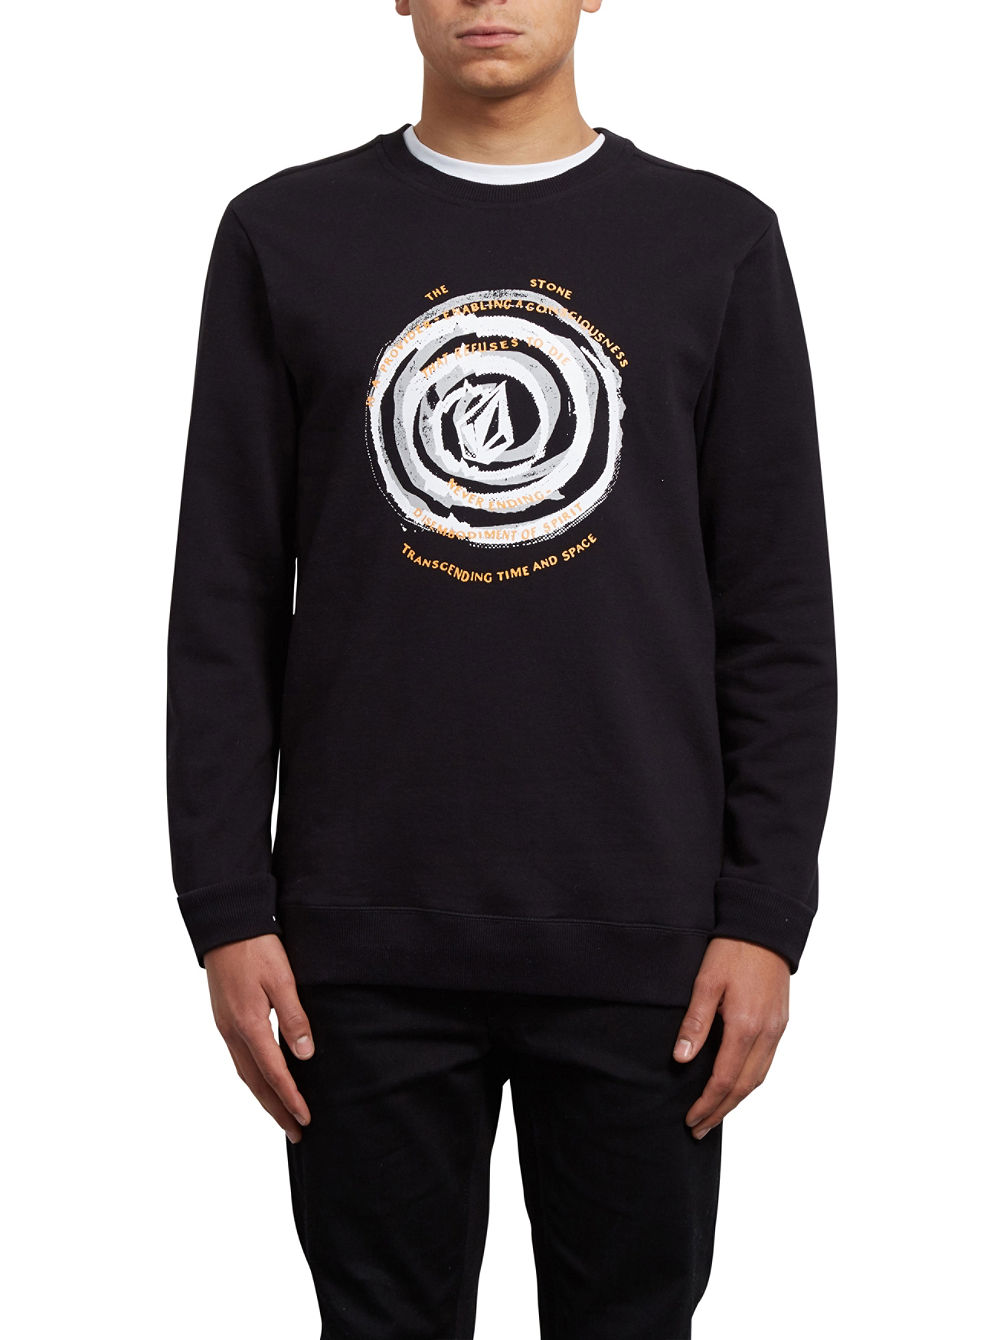 Reload Crew Sweater